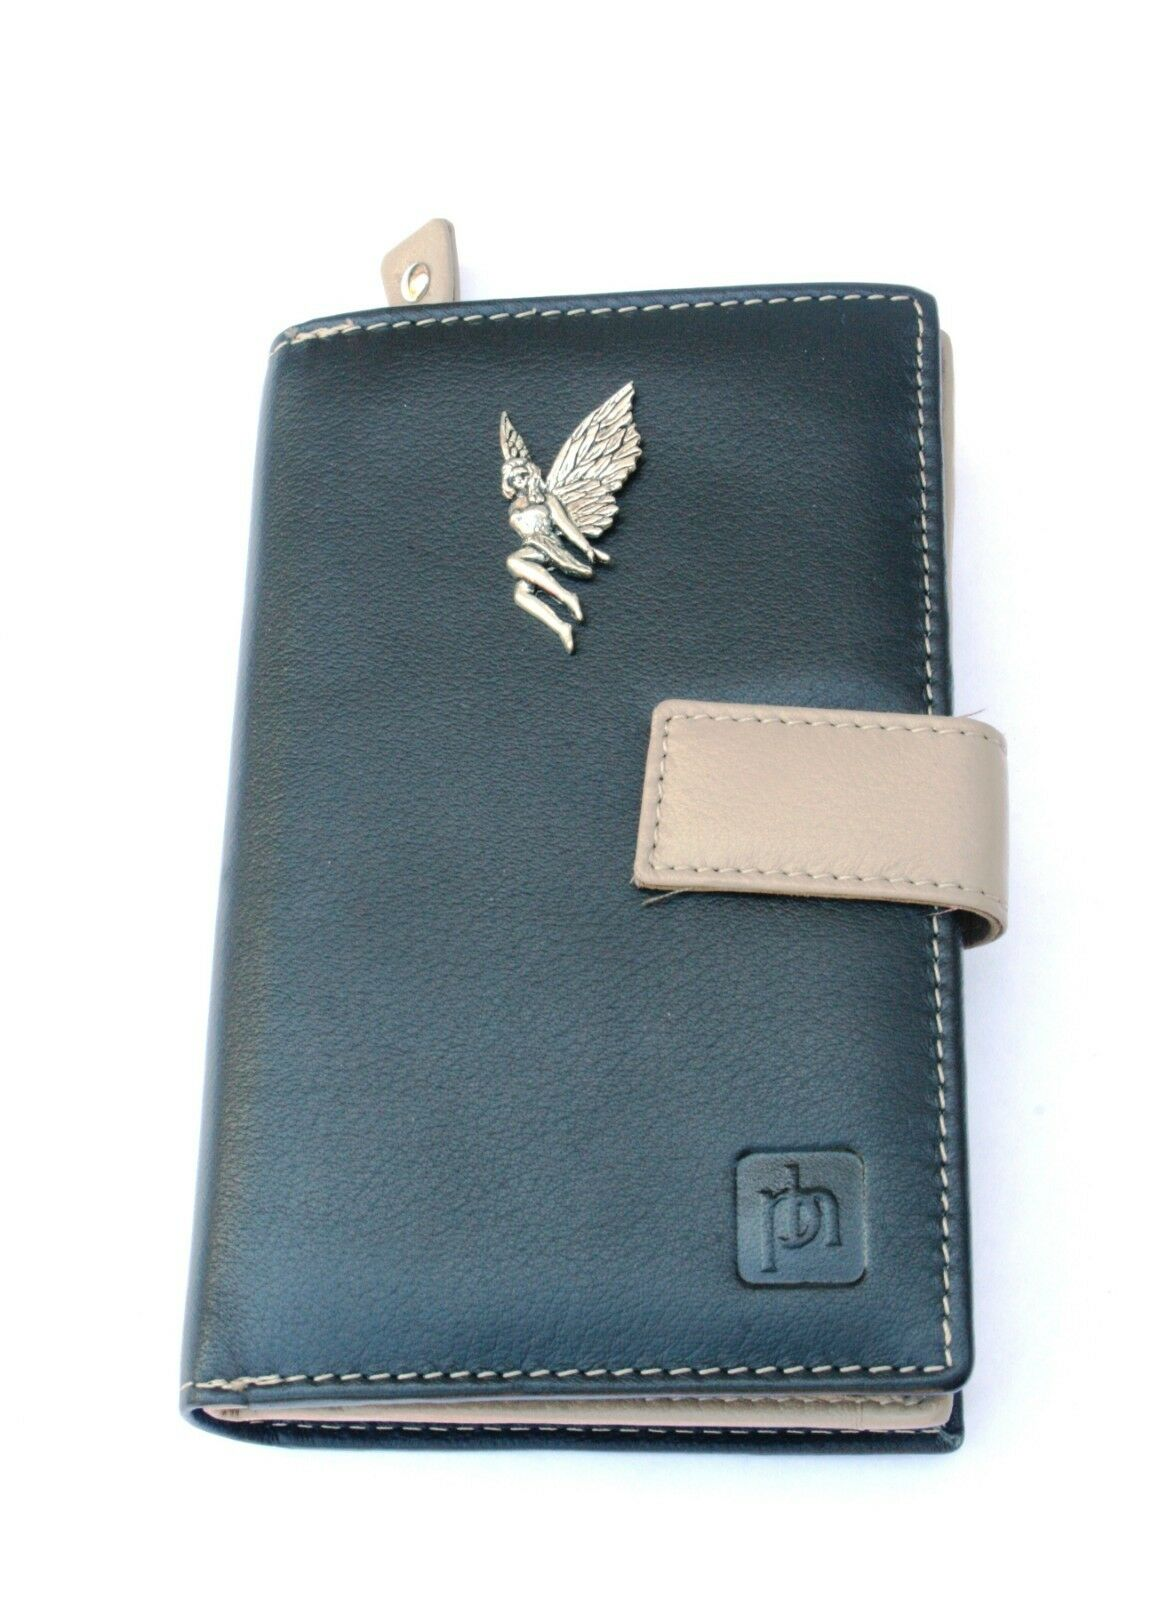 Leaf Fairy Design Leather Purse with Zipped Pocket RFID Safe Women's 121